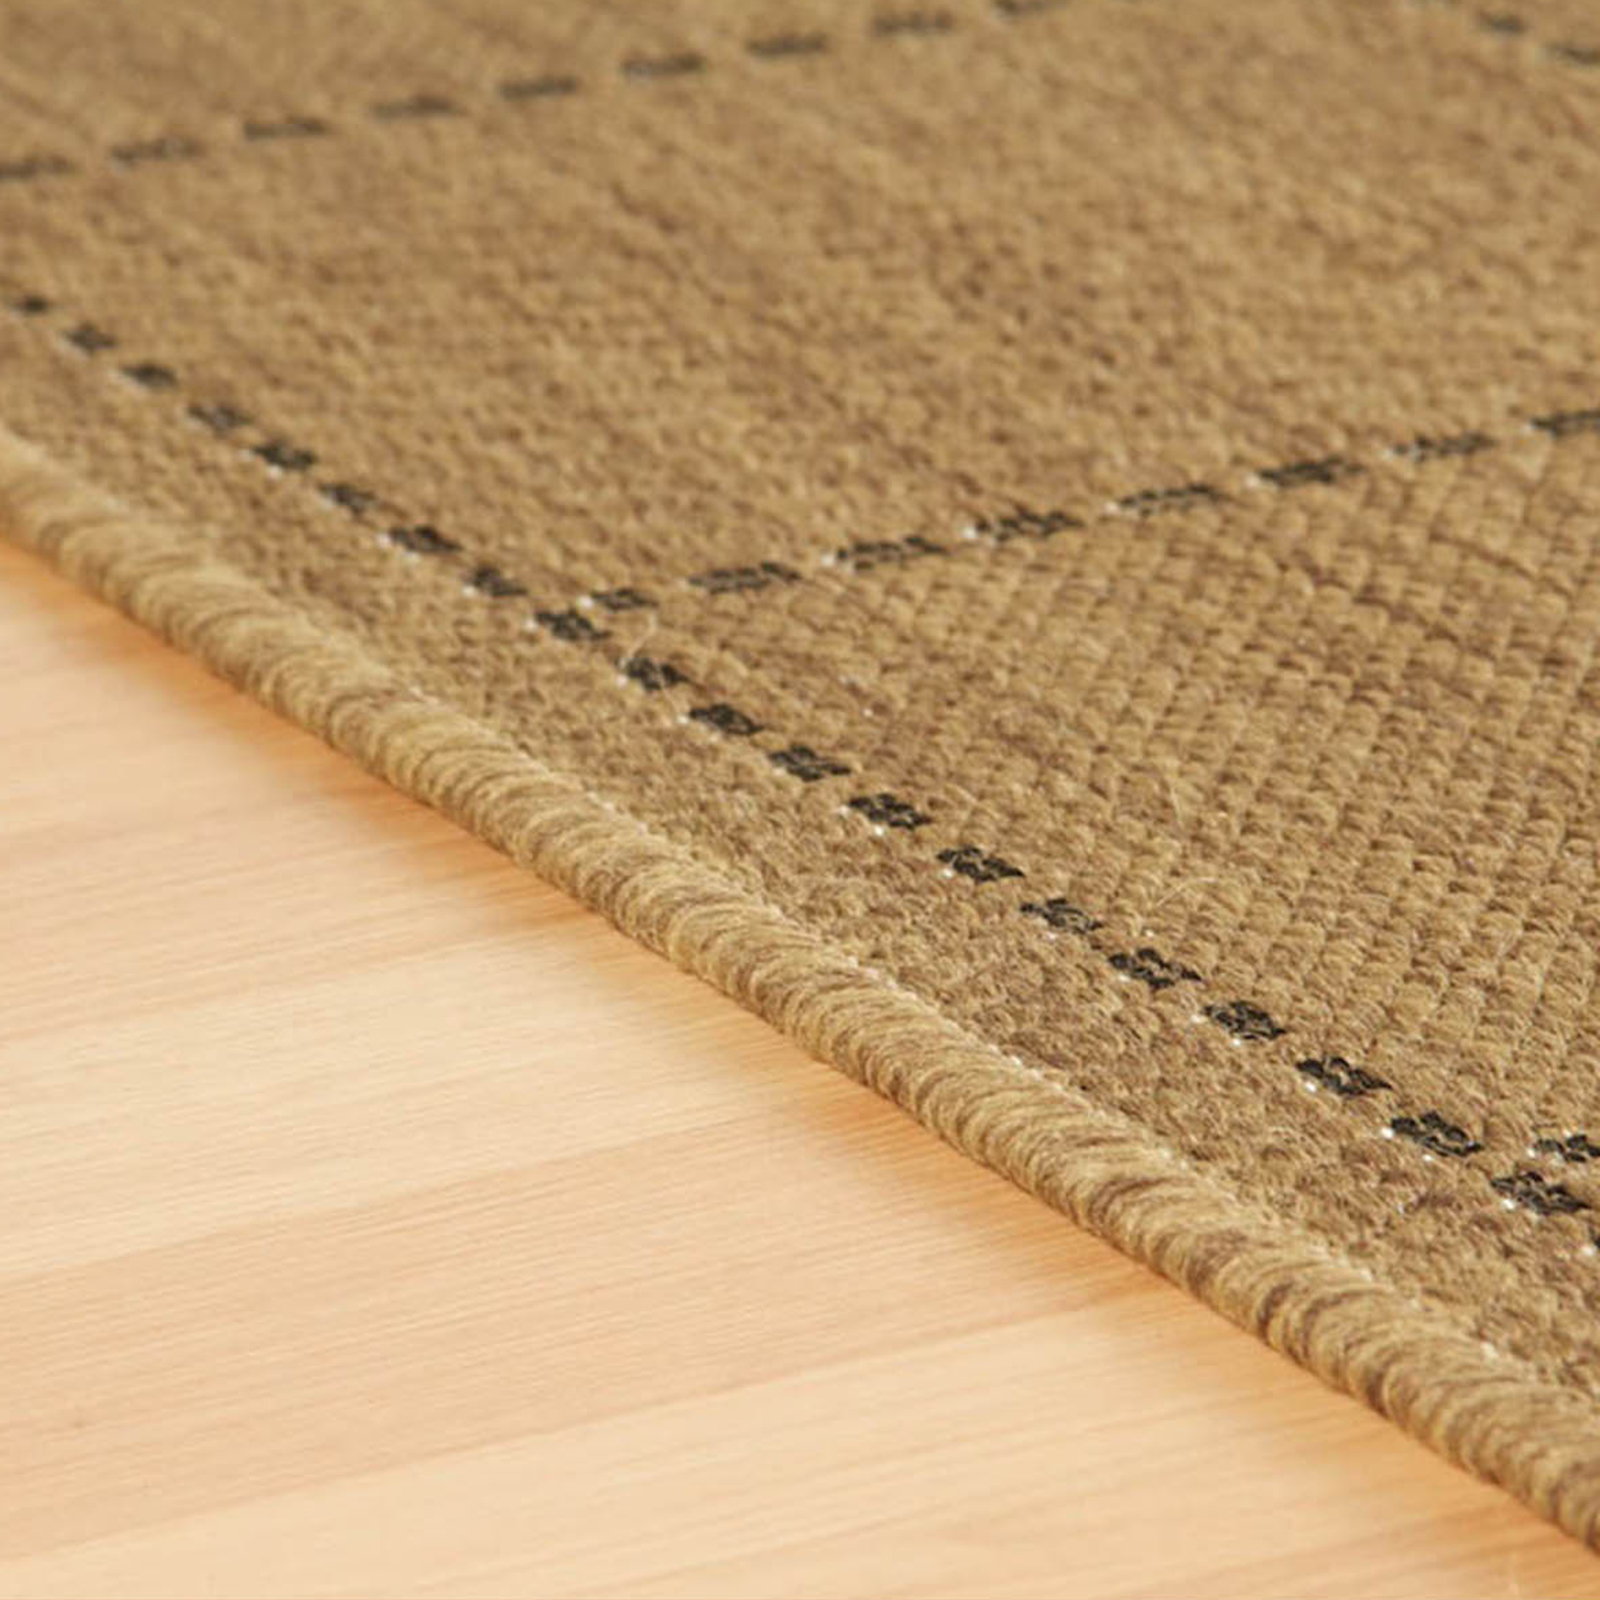 Checked-Flatweave-Natural-Detail-(1).jpg